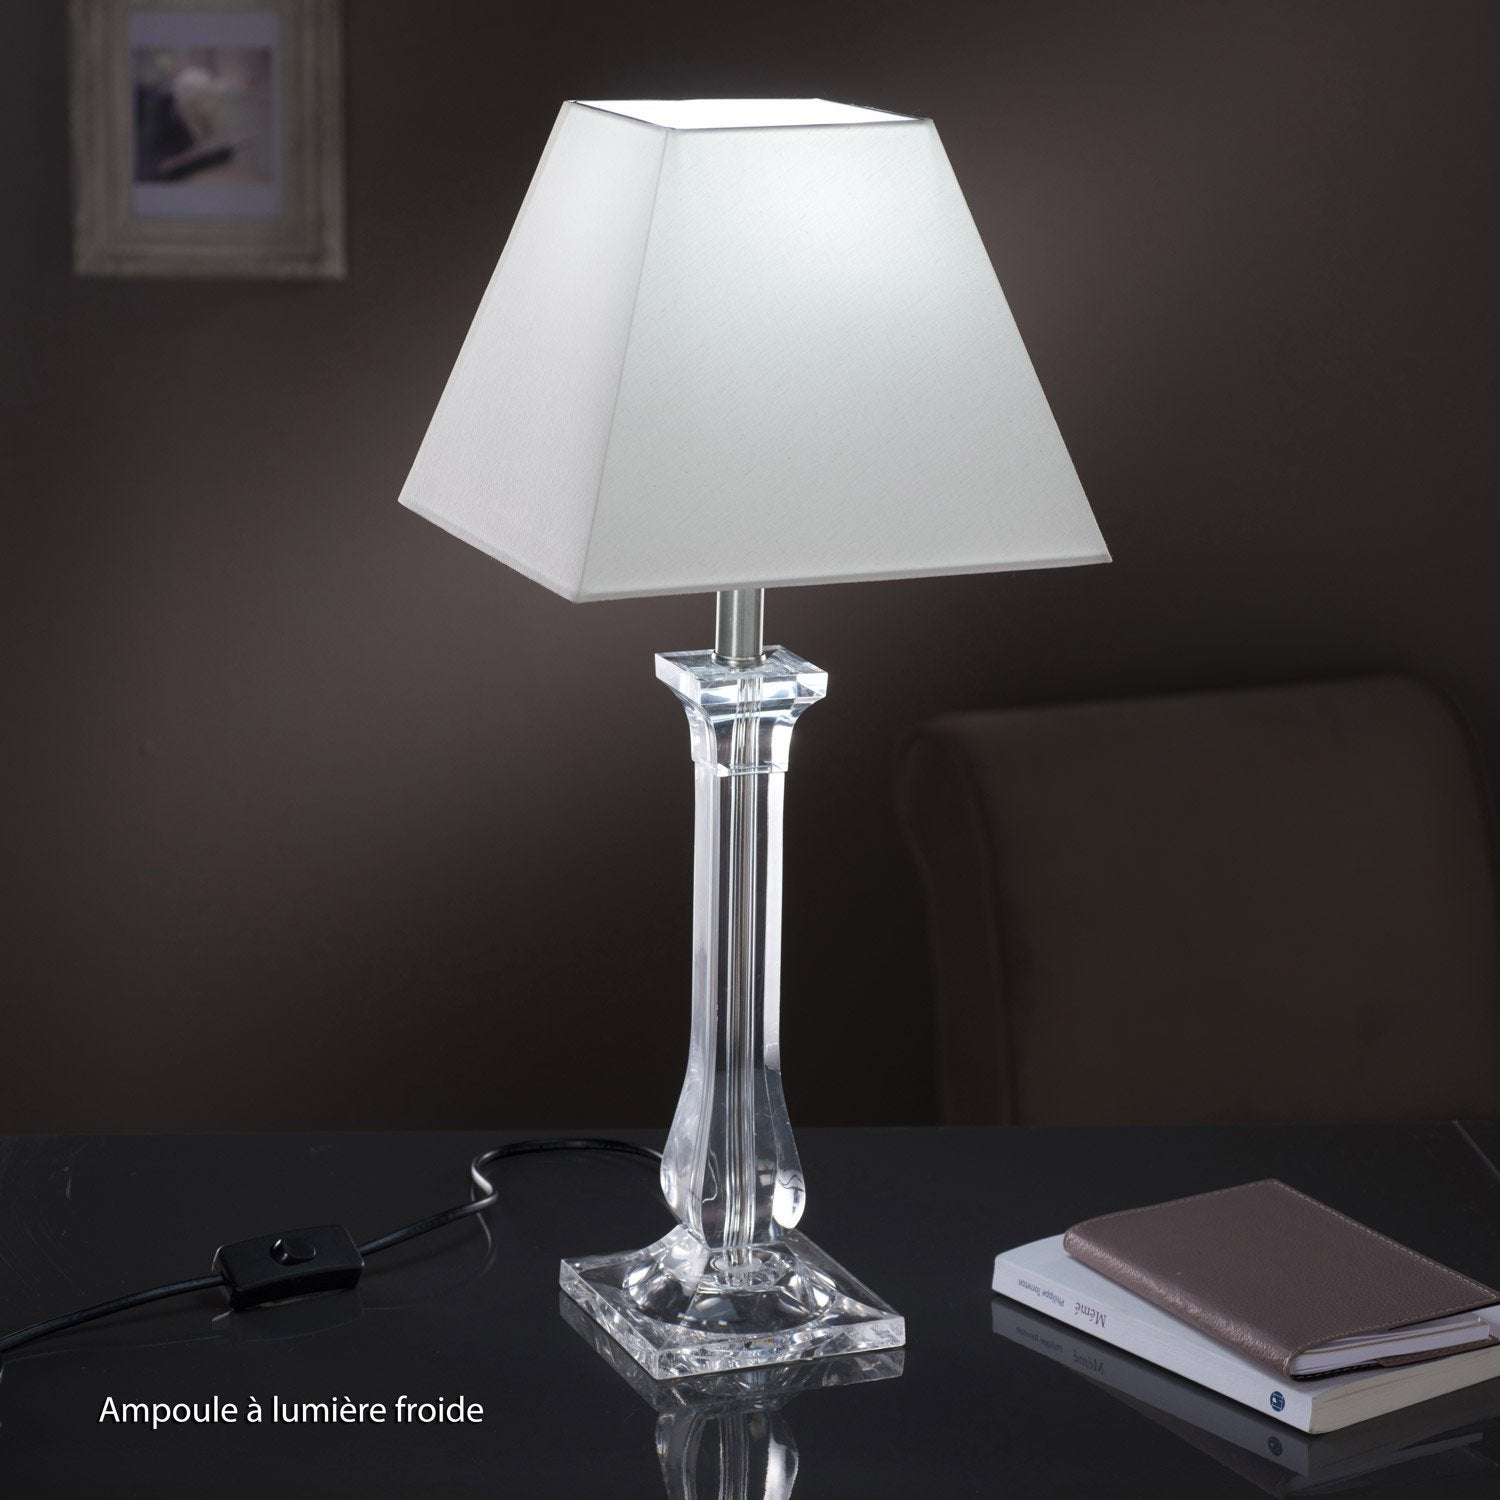 Pied de lampe fantasy acrylique transparent 39 cm for Abat jour leroy merlin